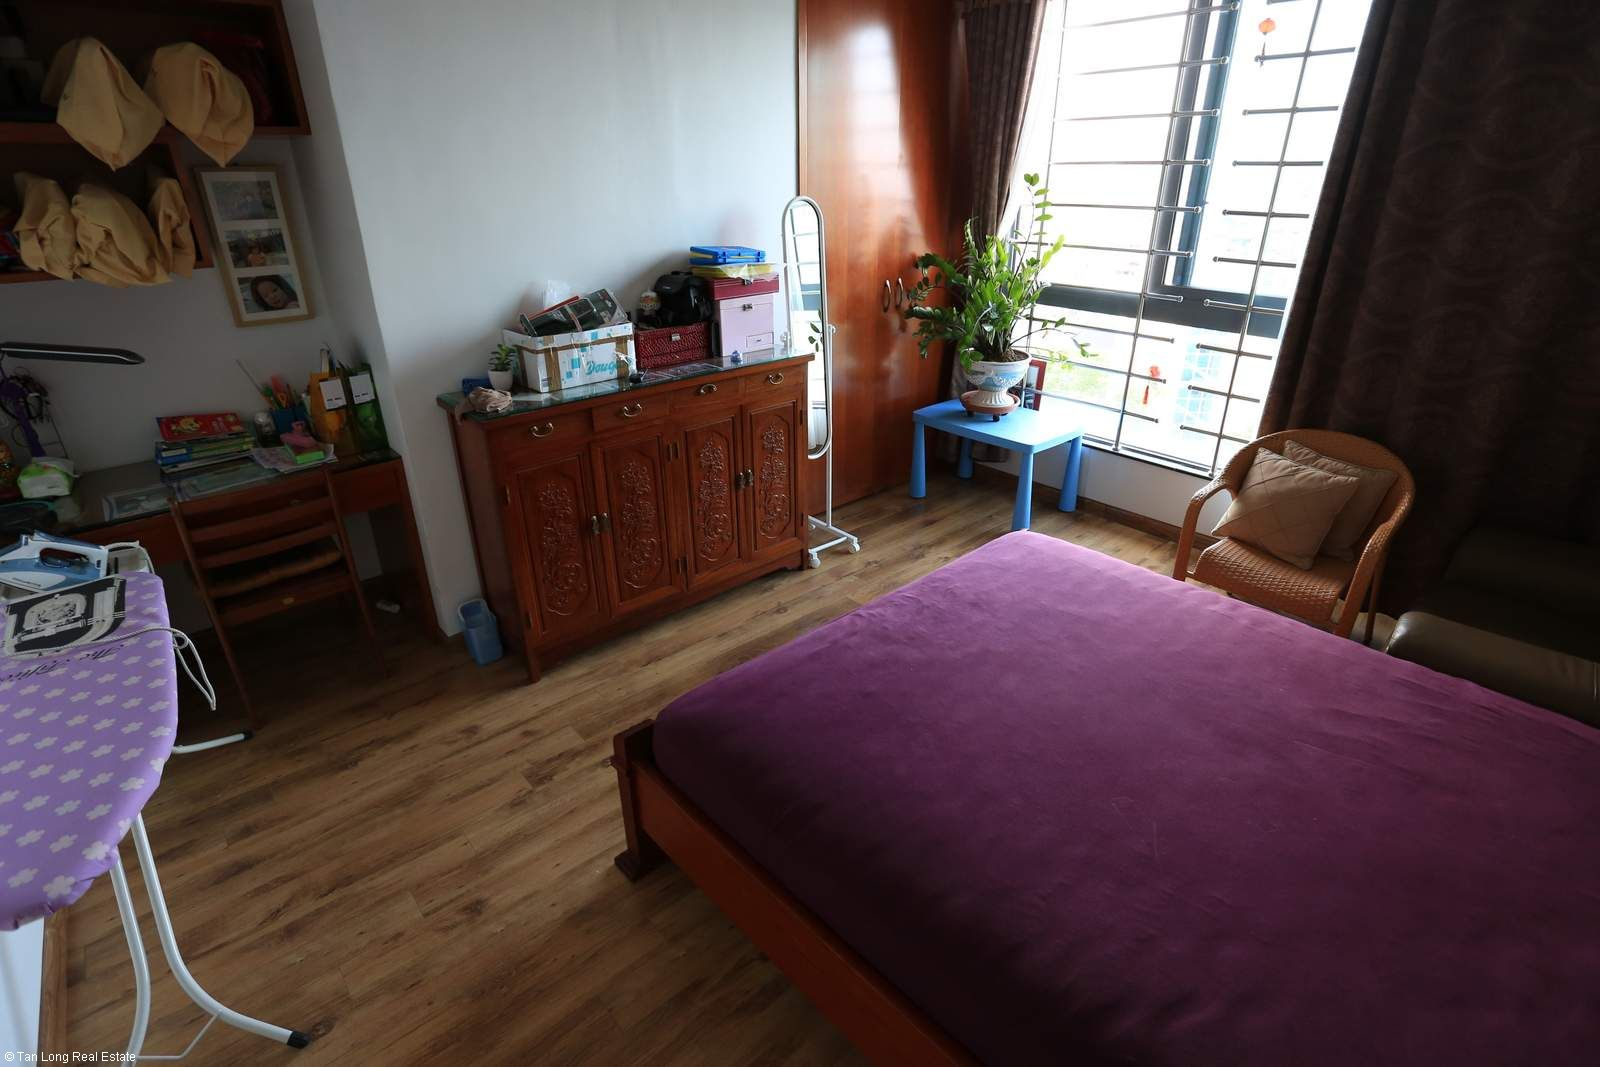 3 bedroom apartment in 671 Hoang Hoa Tham rental. 6